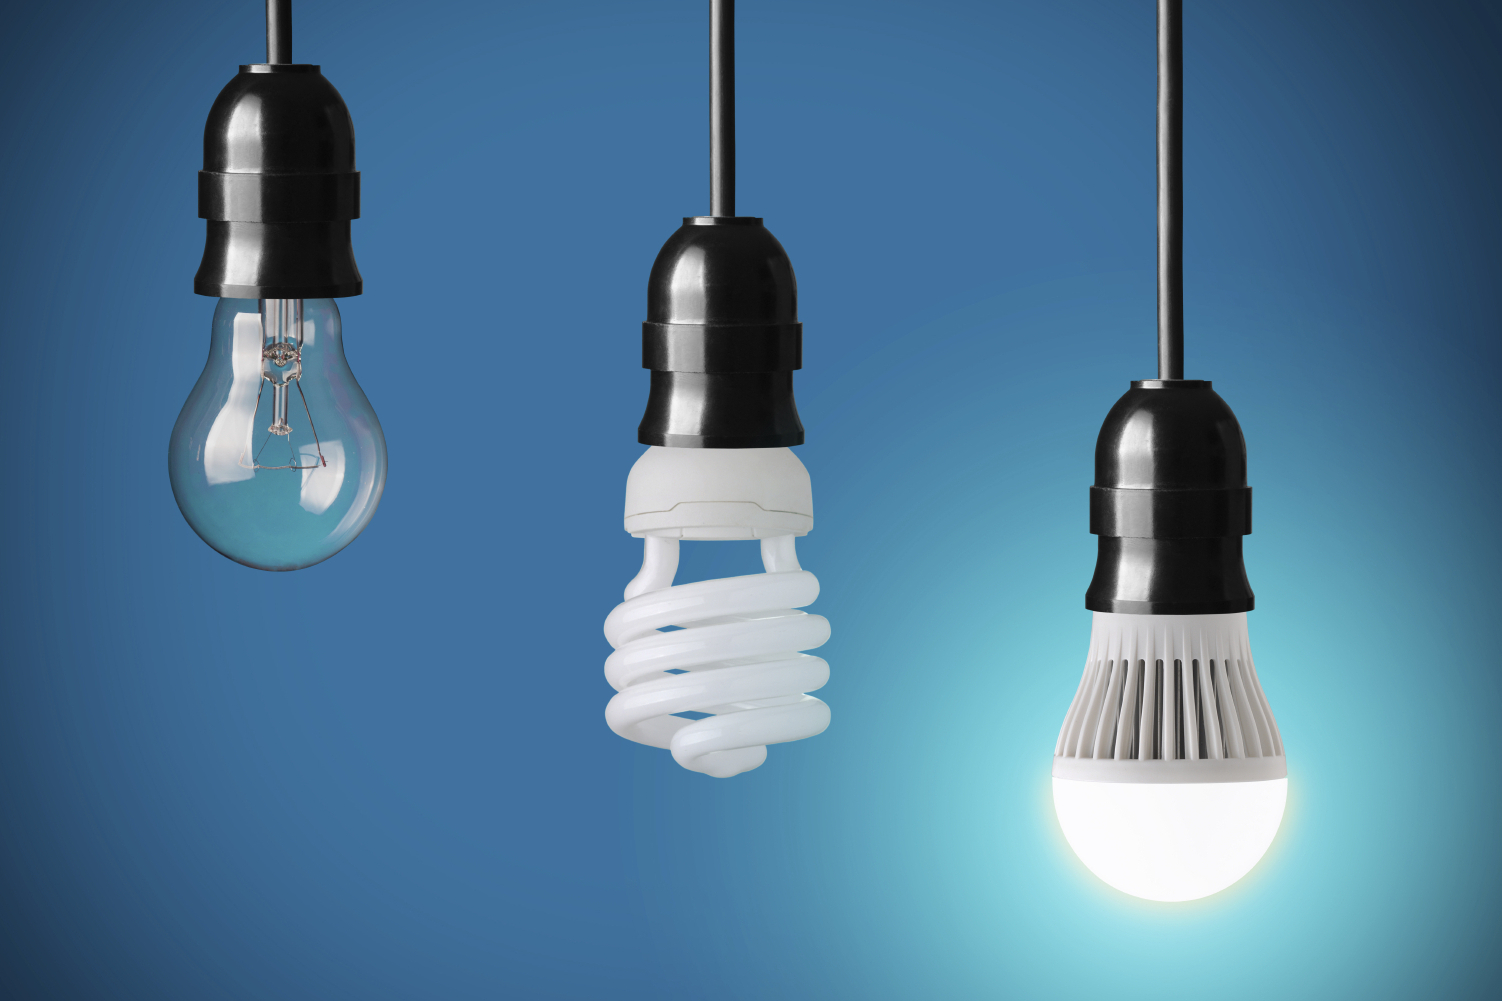 In The Dark About Picking A Light Bulb? This FAQ Can Help | Colorado Public  Radio